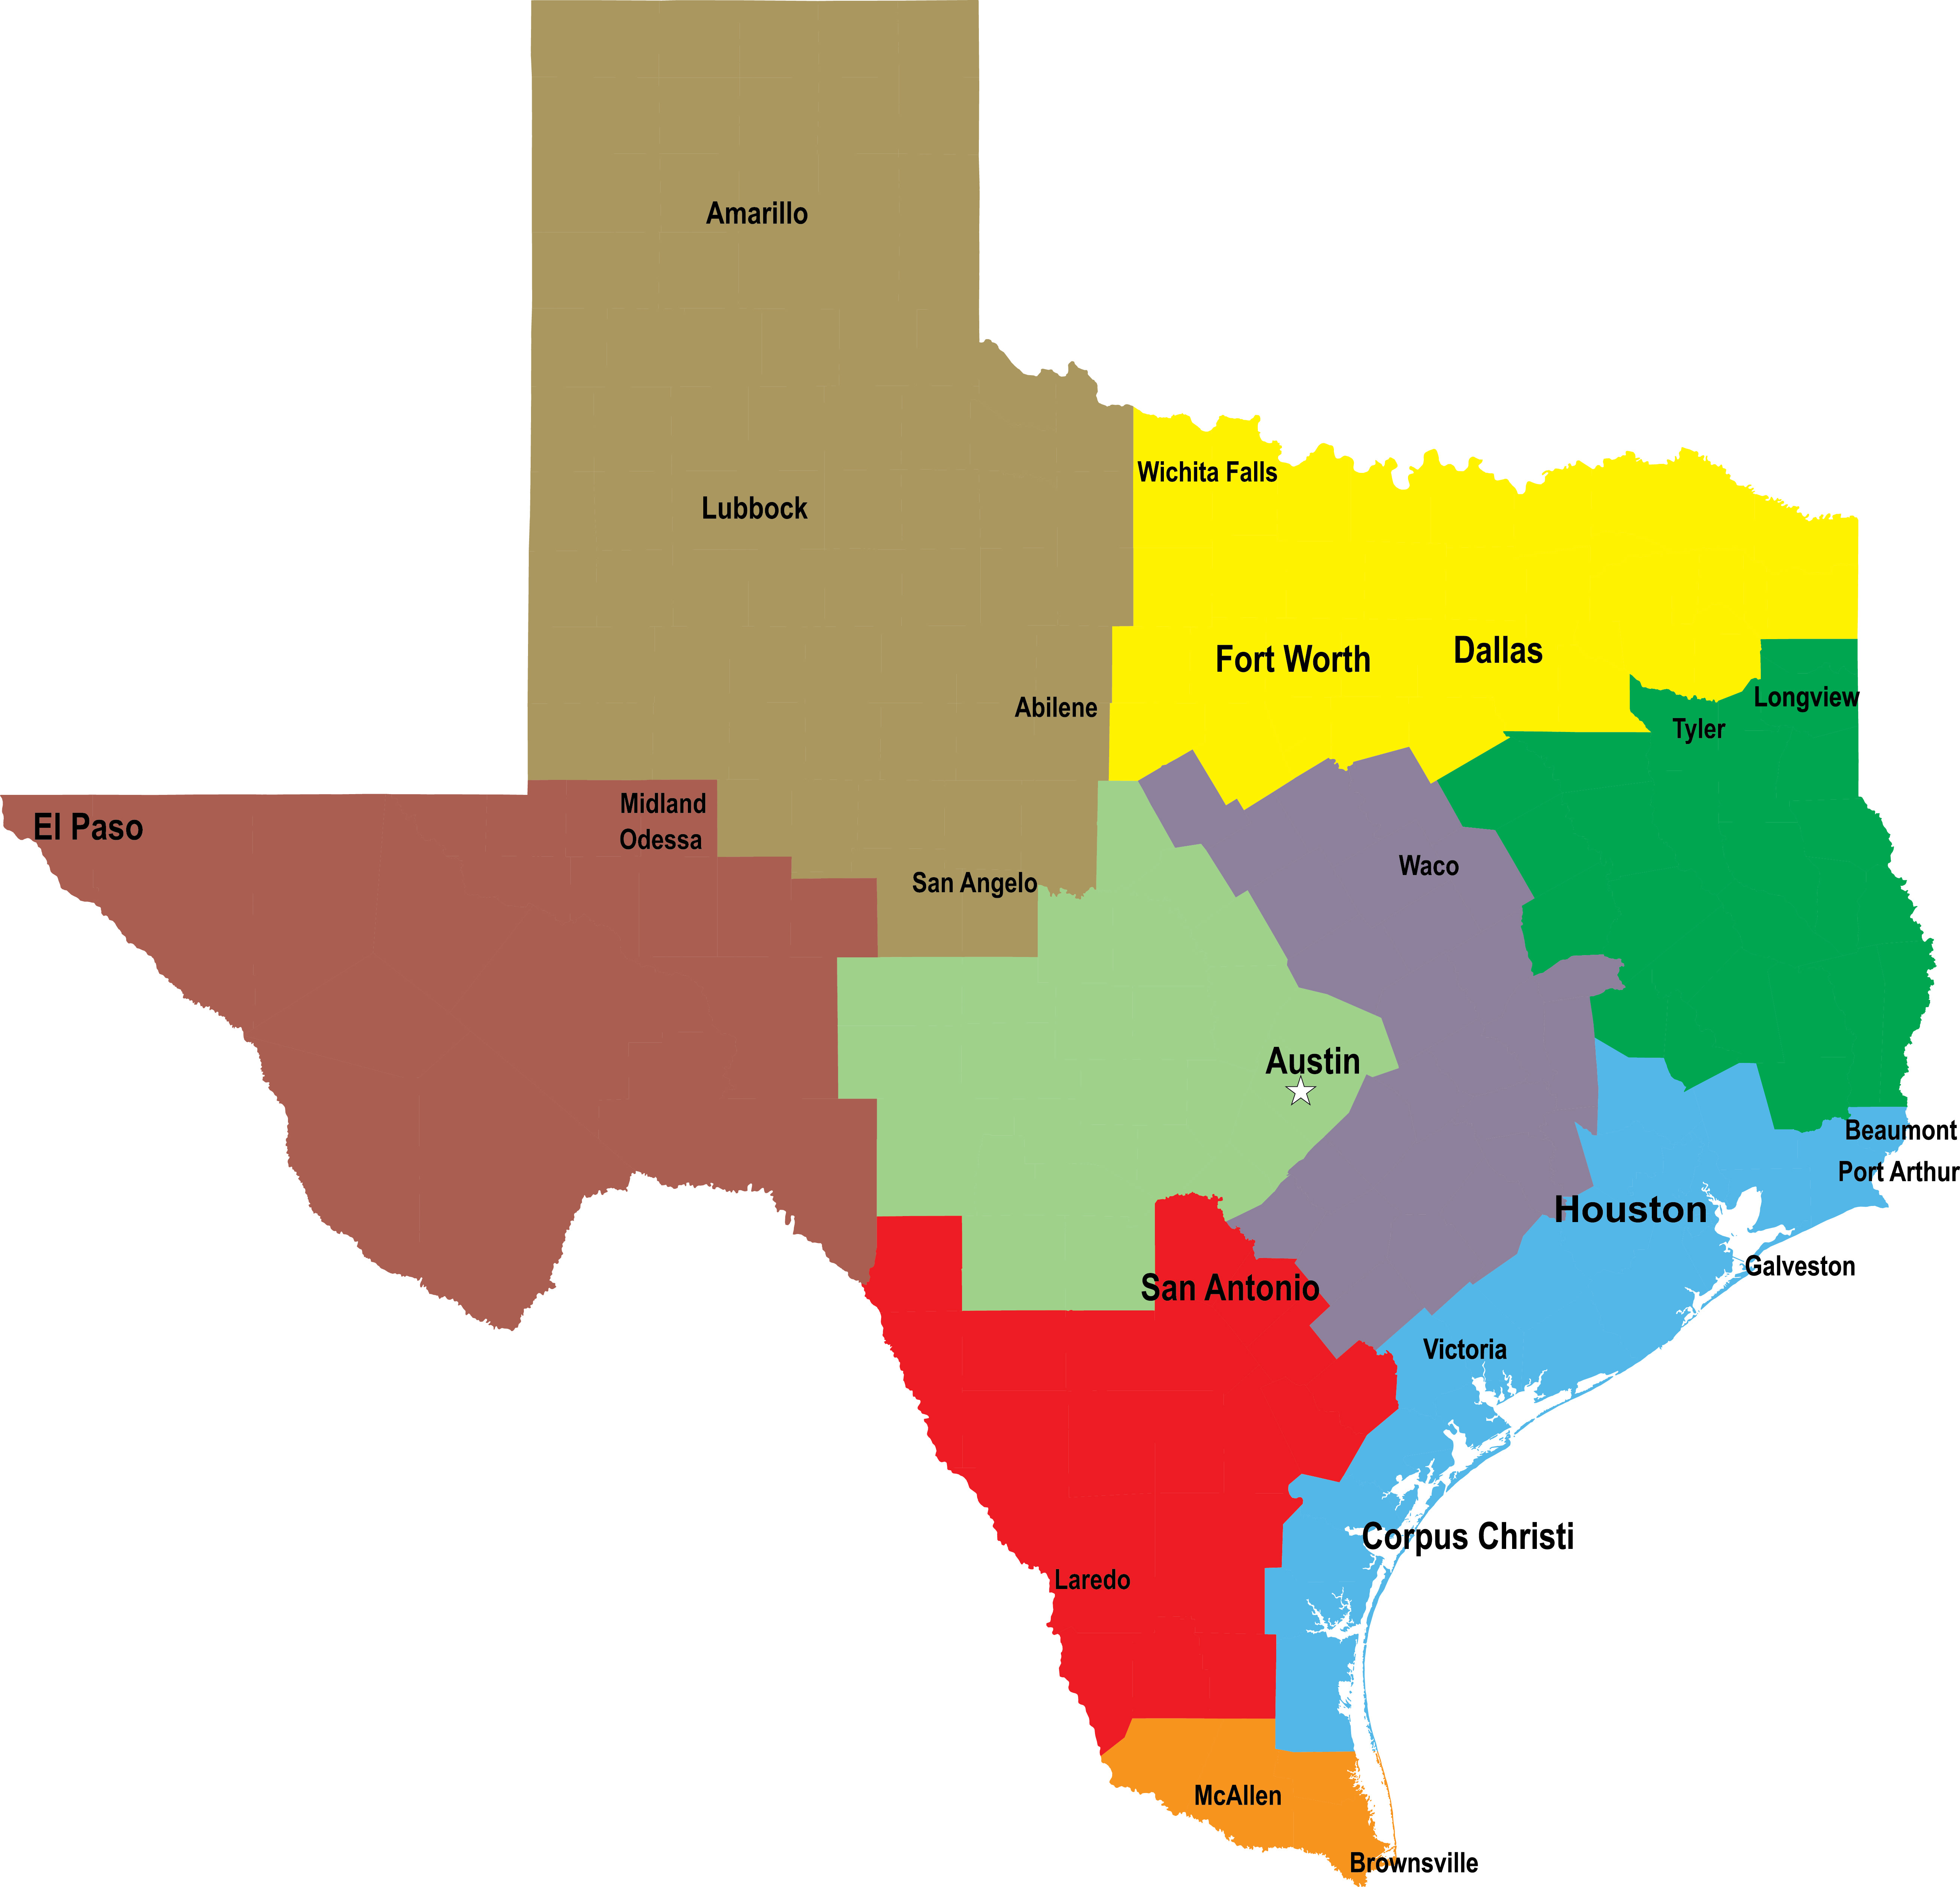 Rio Grande City (TX) United States  city images : ... United States Map With Alaska And Hawaii. on rio grande united states